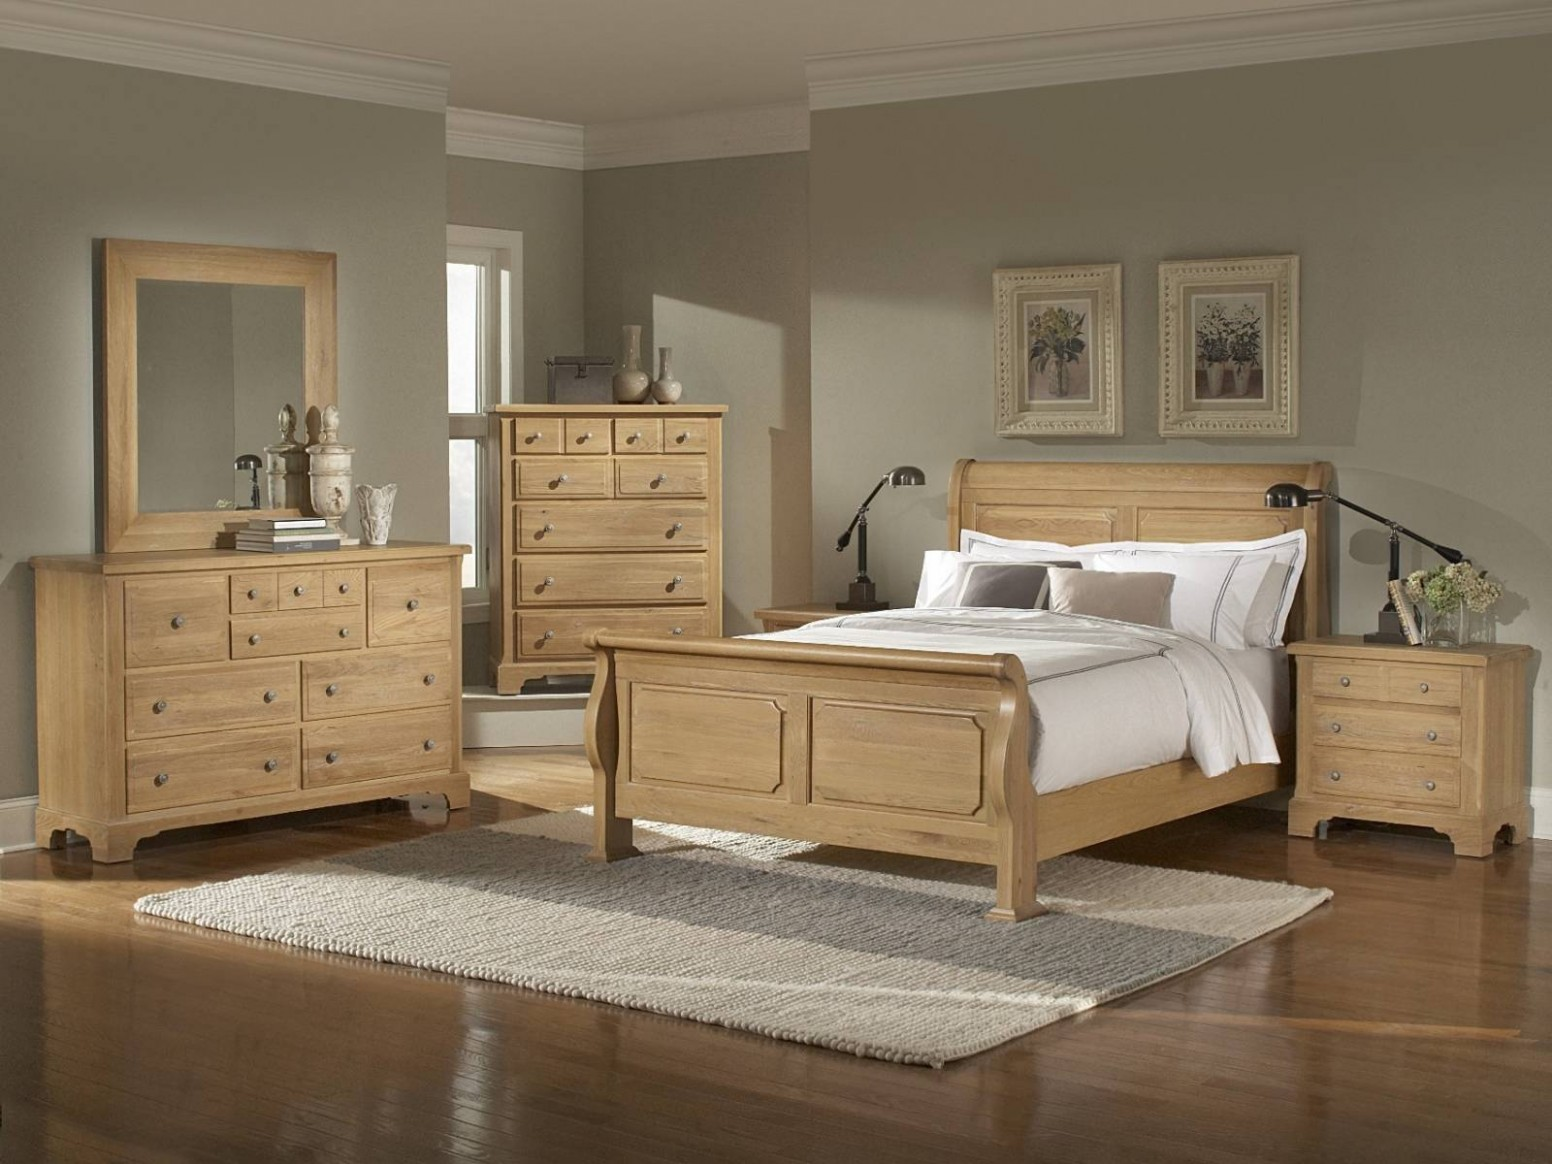 Bedroom Designs With Light Wood Furniture  Home Decor - Bedroom Ideas With Oak Furniture